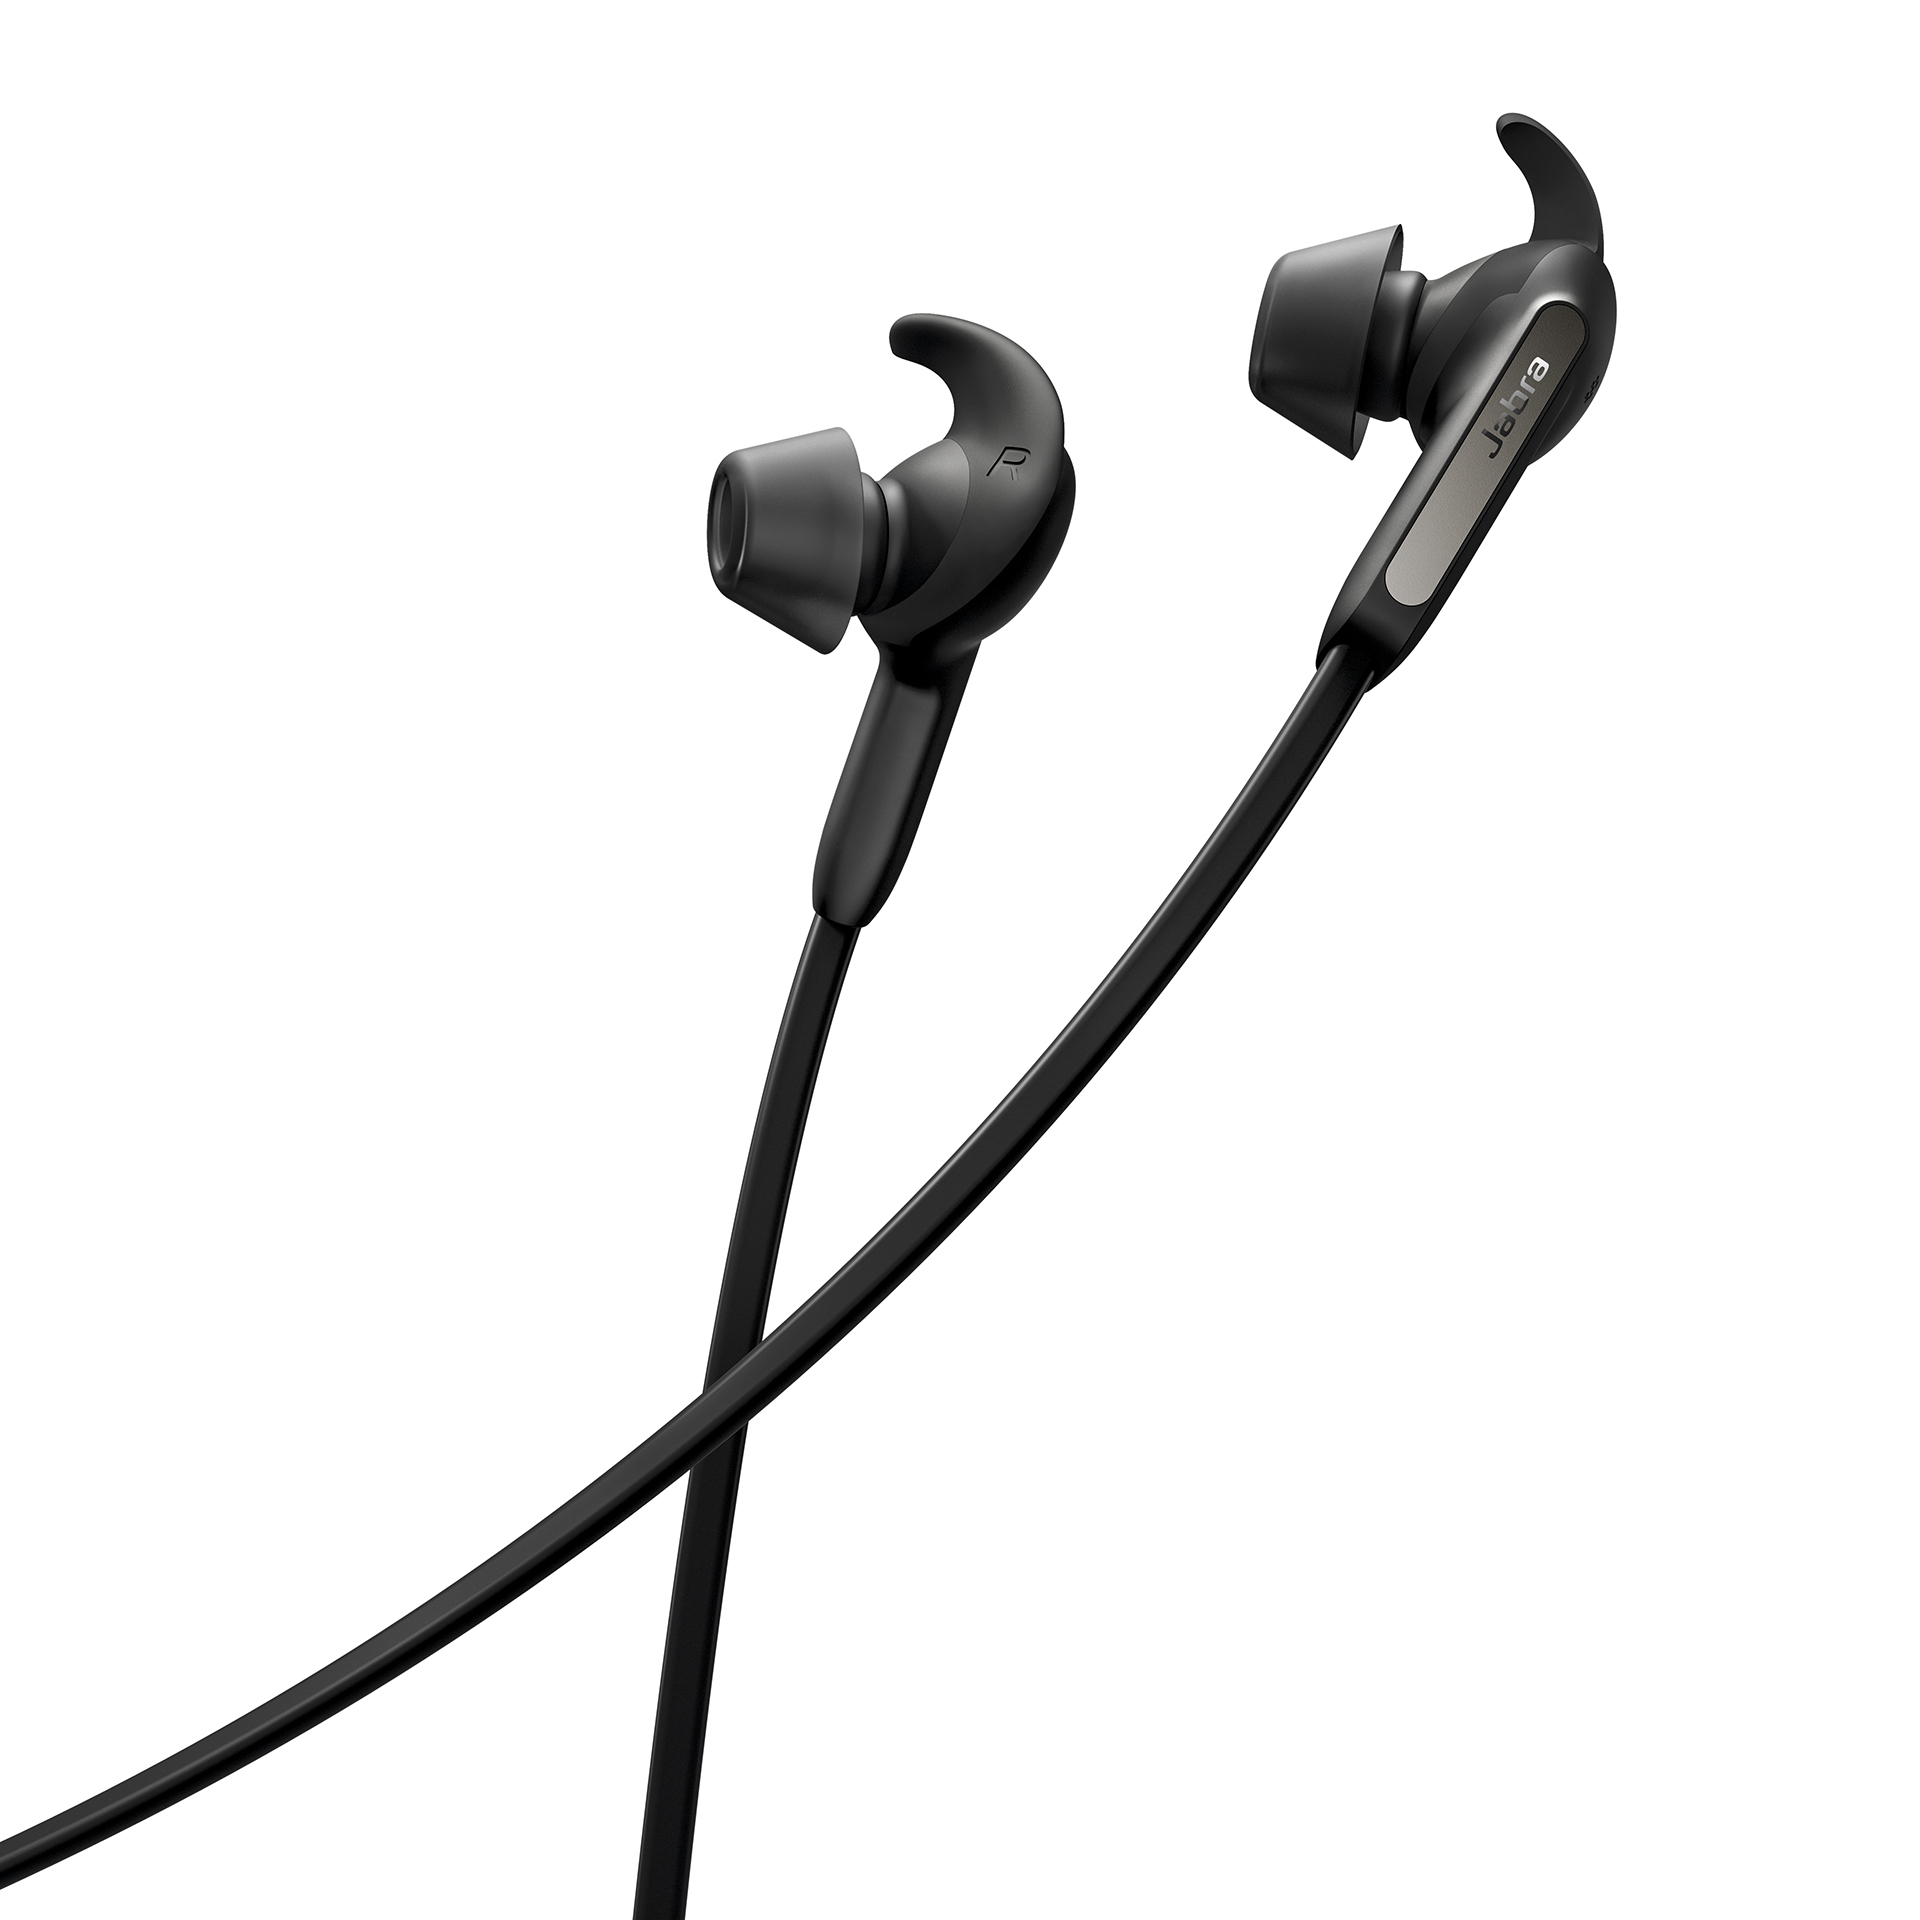 Jabra-Elite-65e-Alexa-Wireless-Neckband-ANC-Earbuds-Manufacturer-Refurbished thumbnail 16